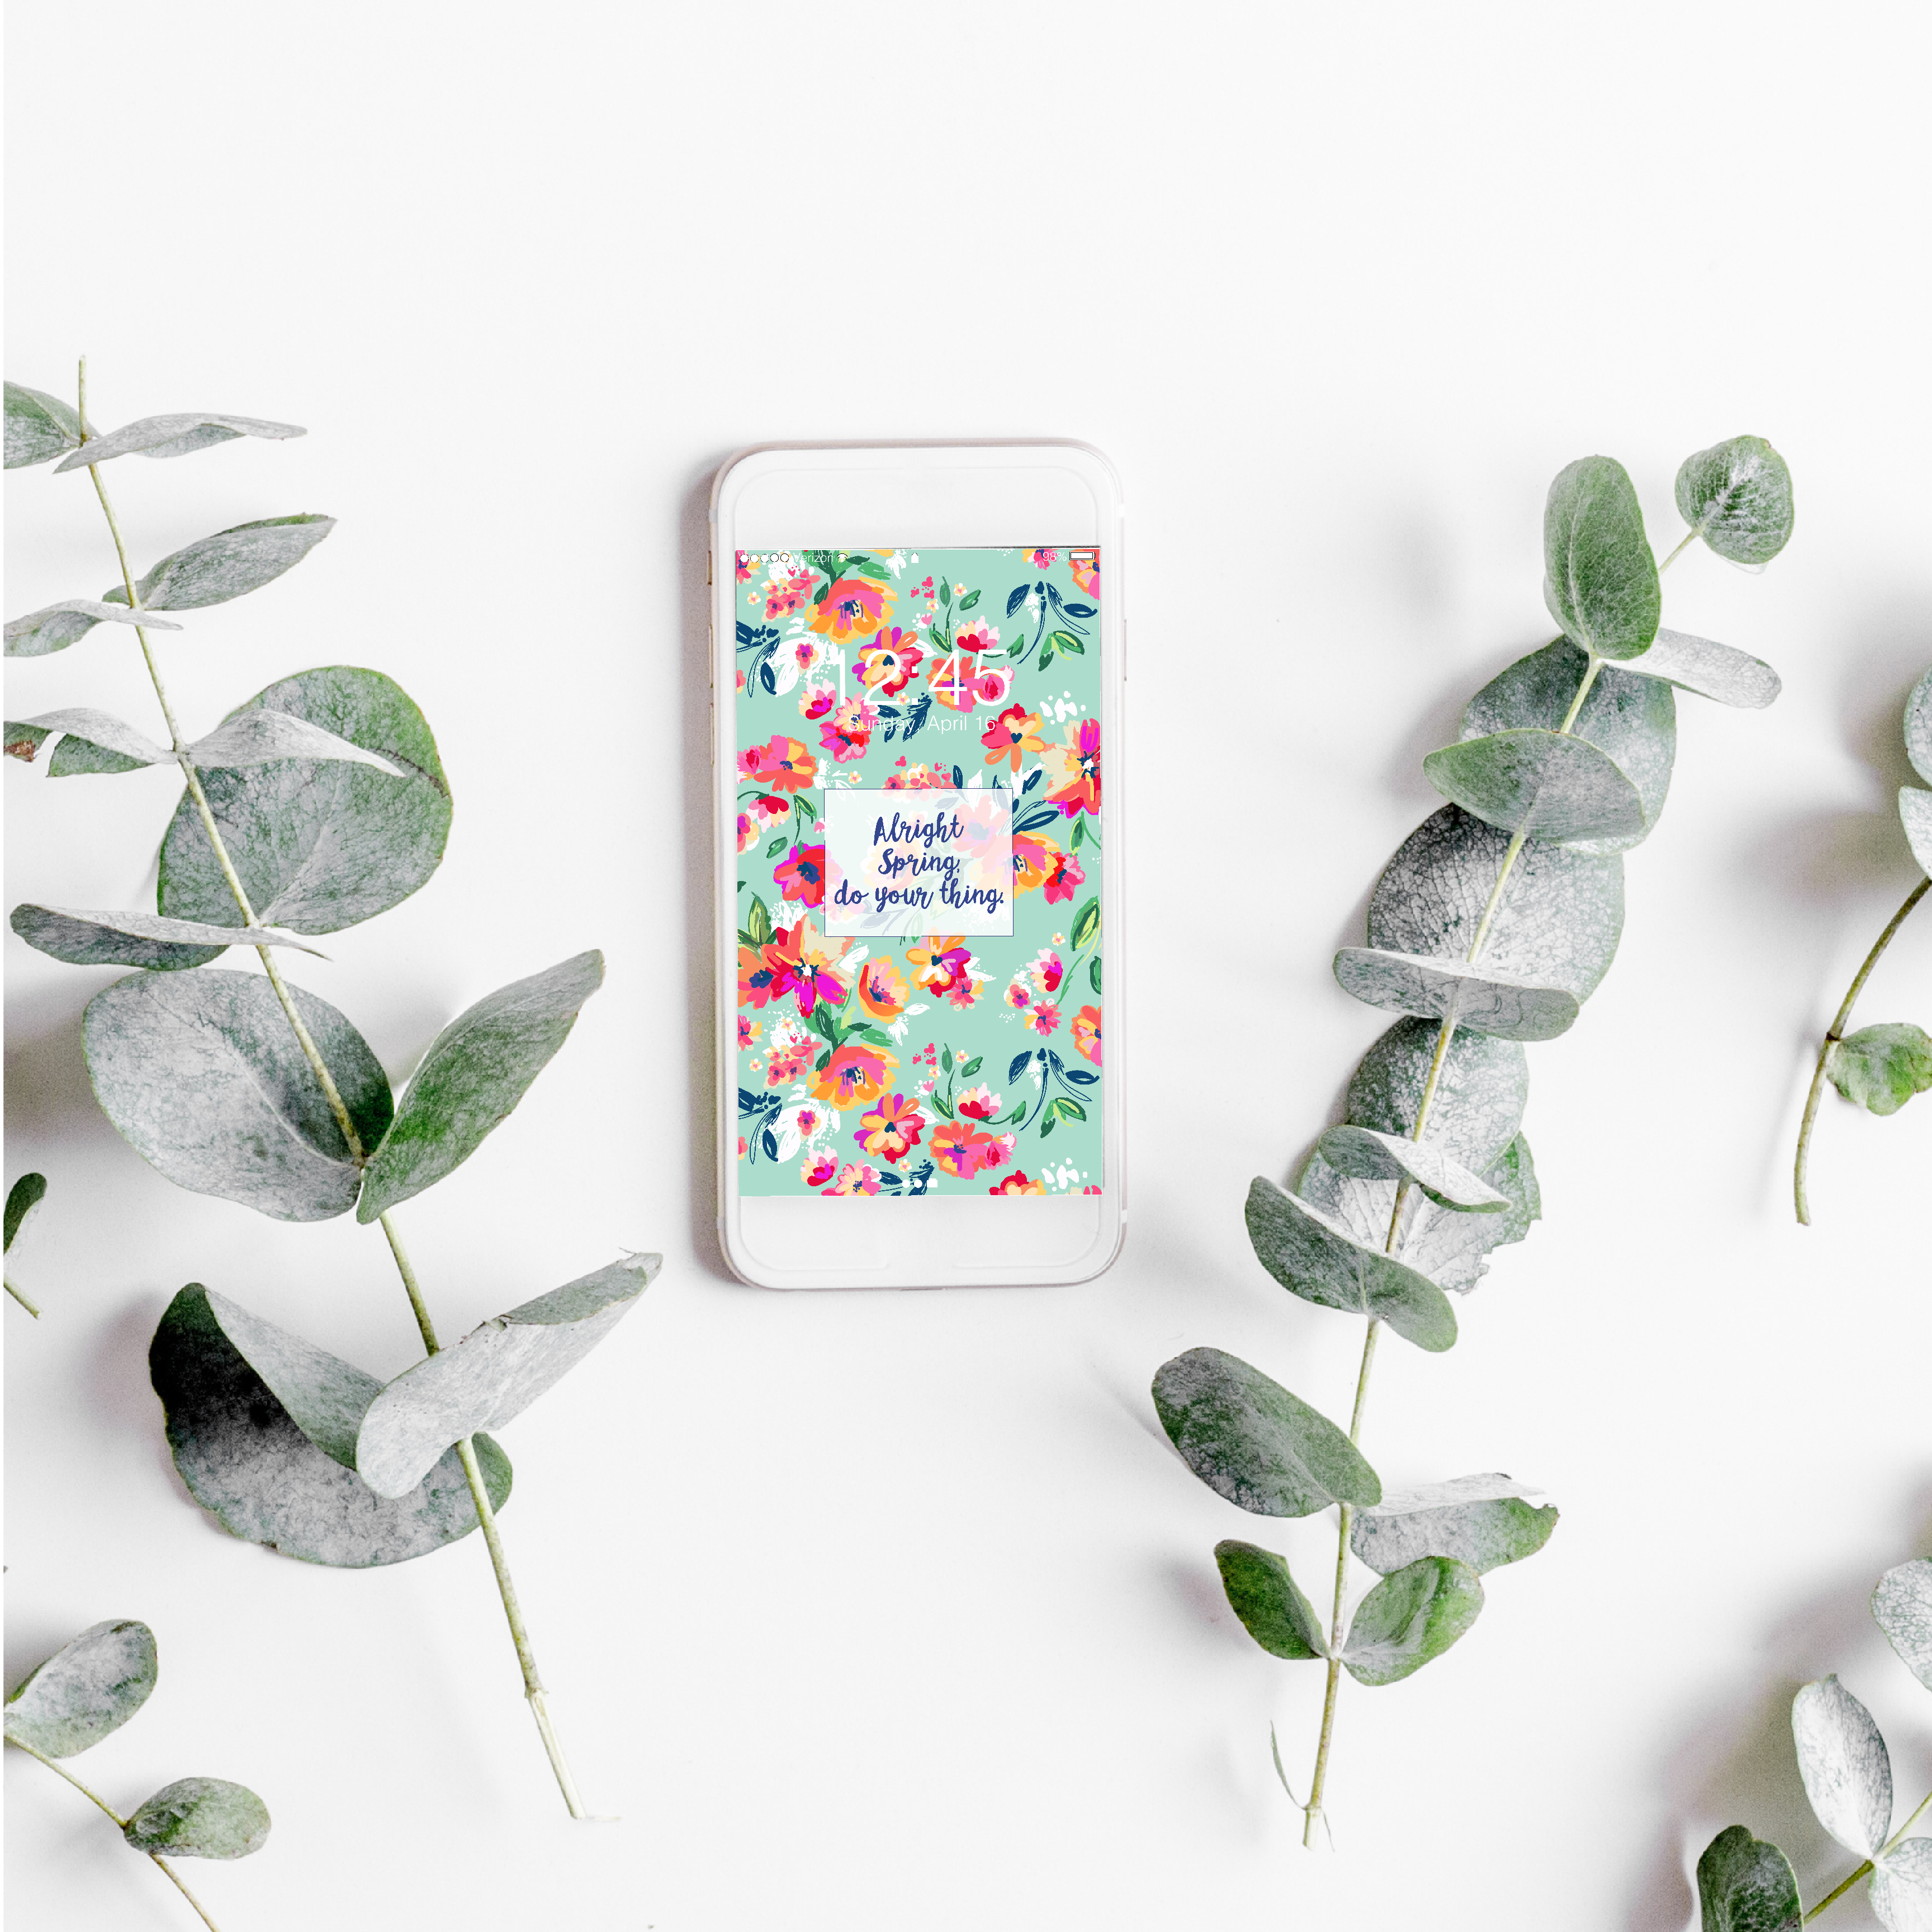 Alright Spring, Do Your Thing – Weekly Inspiration Phone Wallpaper